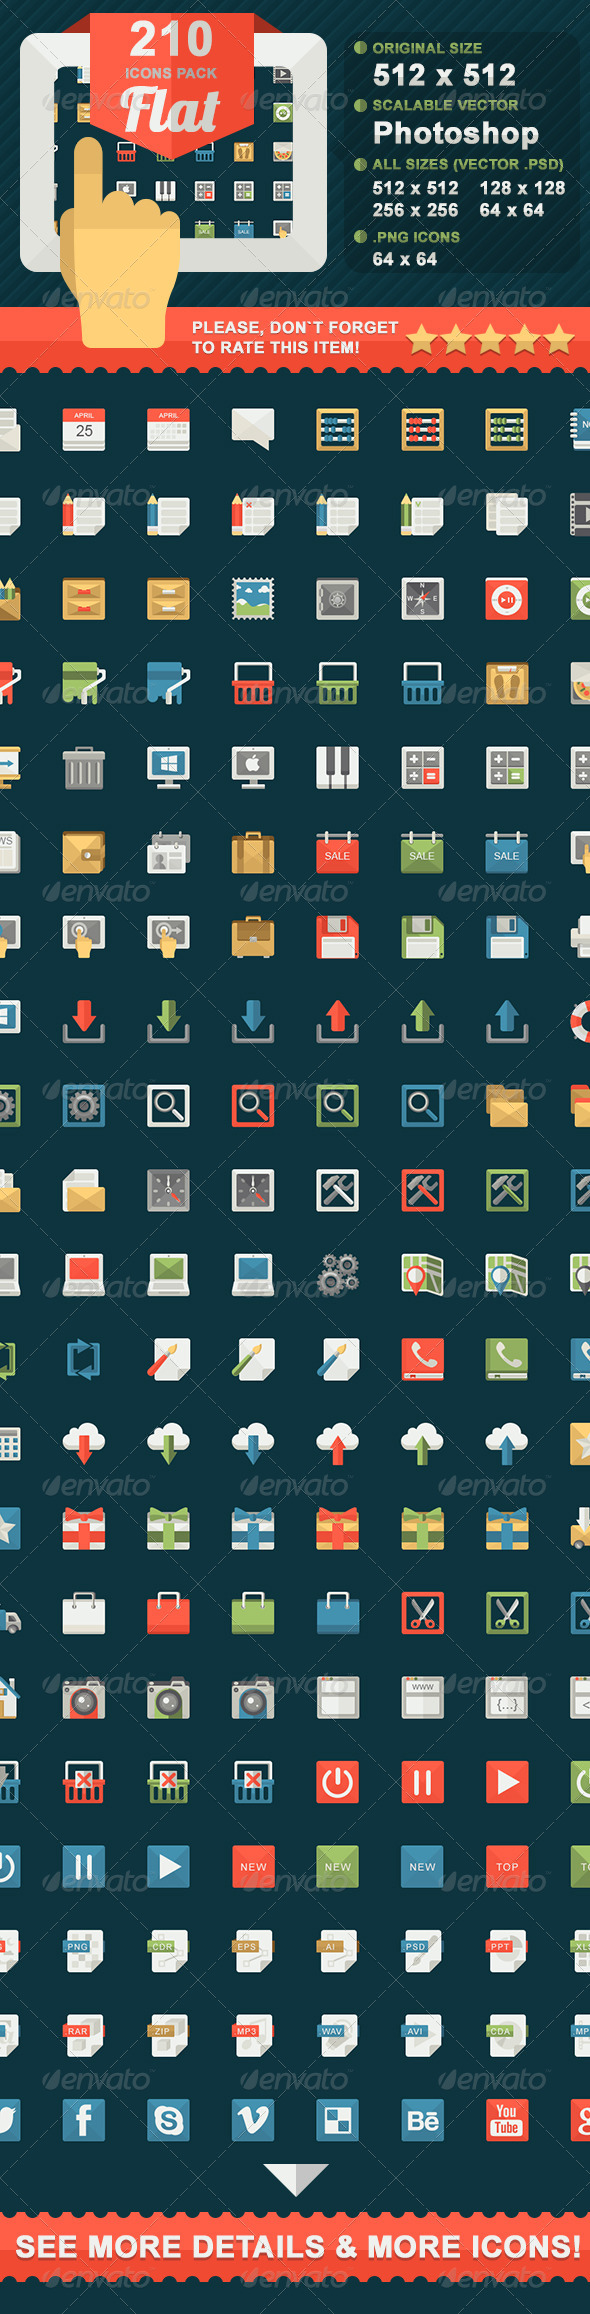 210 Flat icons pack - Icons